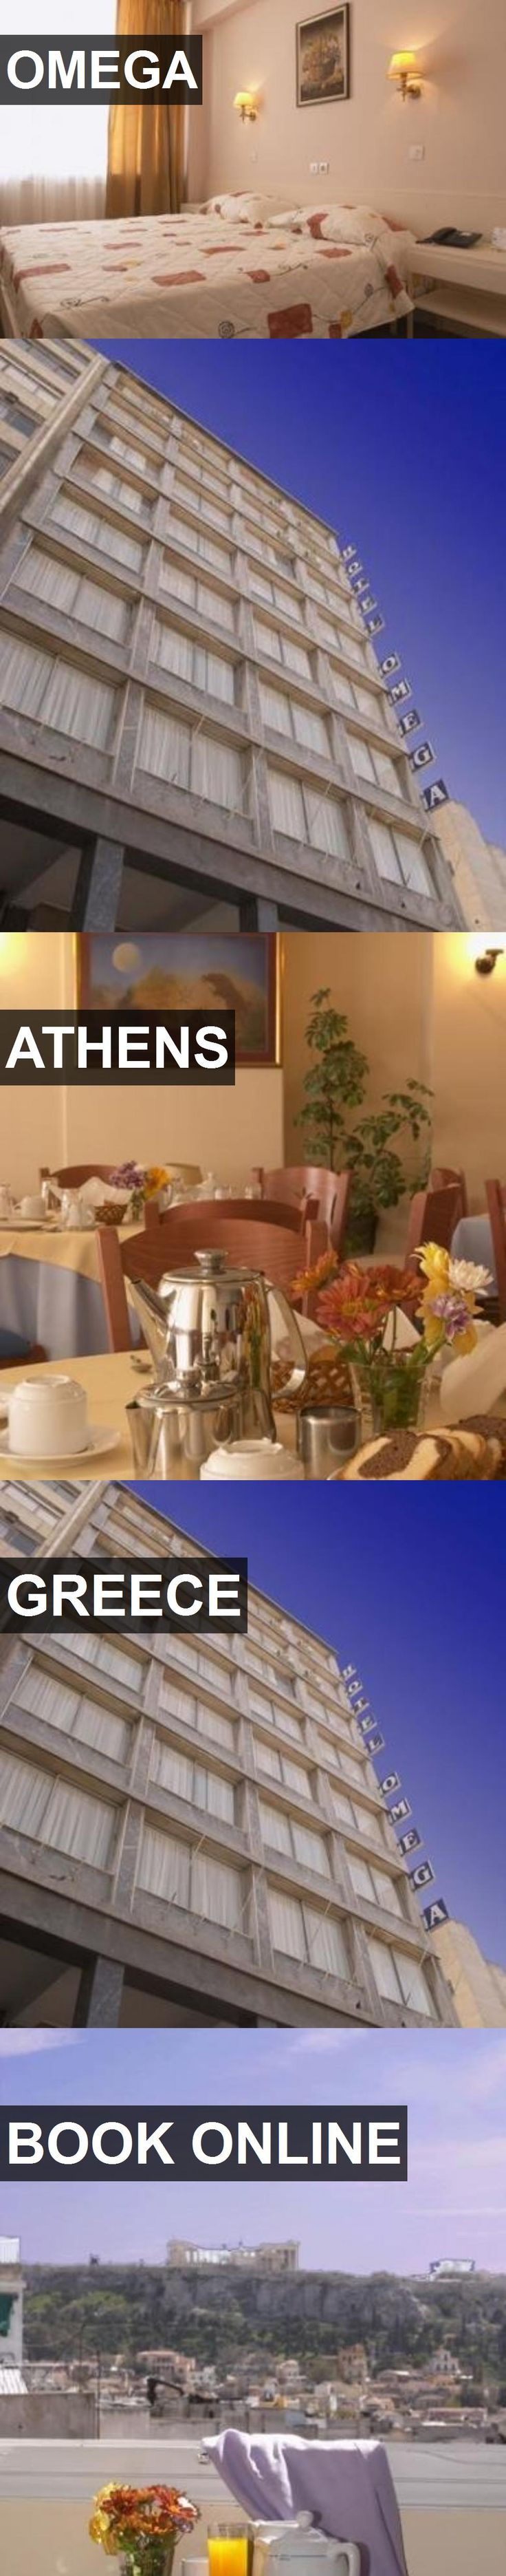 Hotel OMEGA in Athens, Greece. For more information, photos, reviews and best prices please follow the link. #Greece #Athens #hotel #travel #vacation